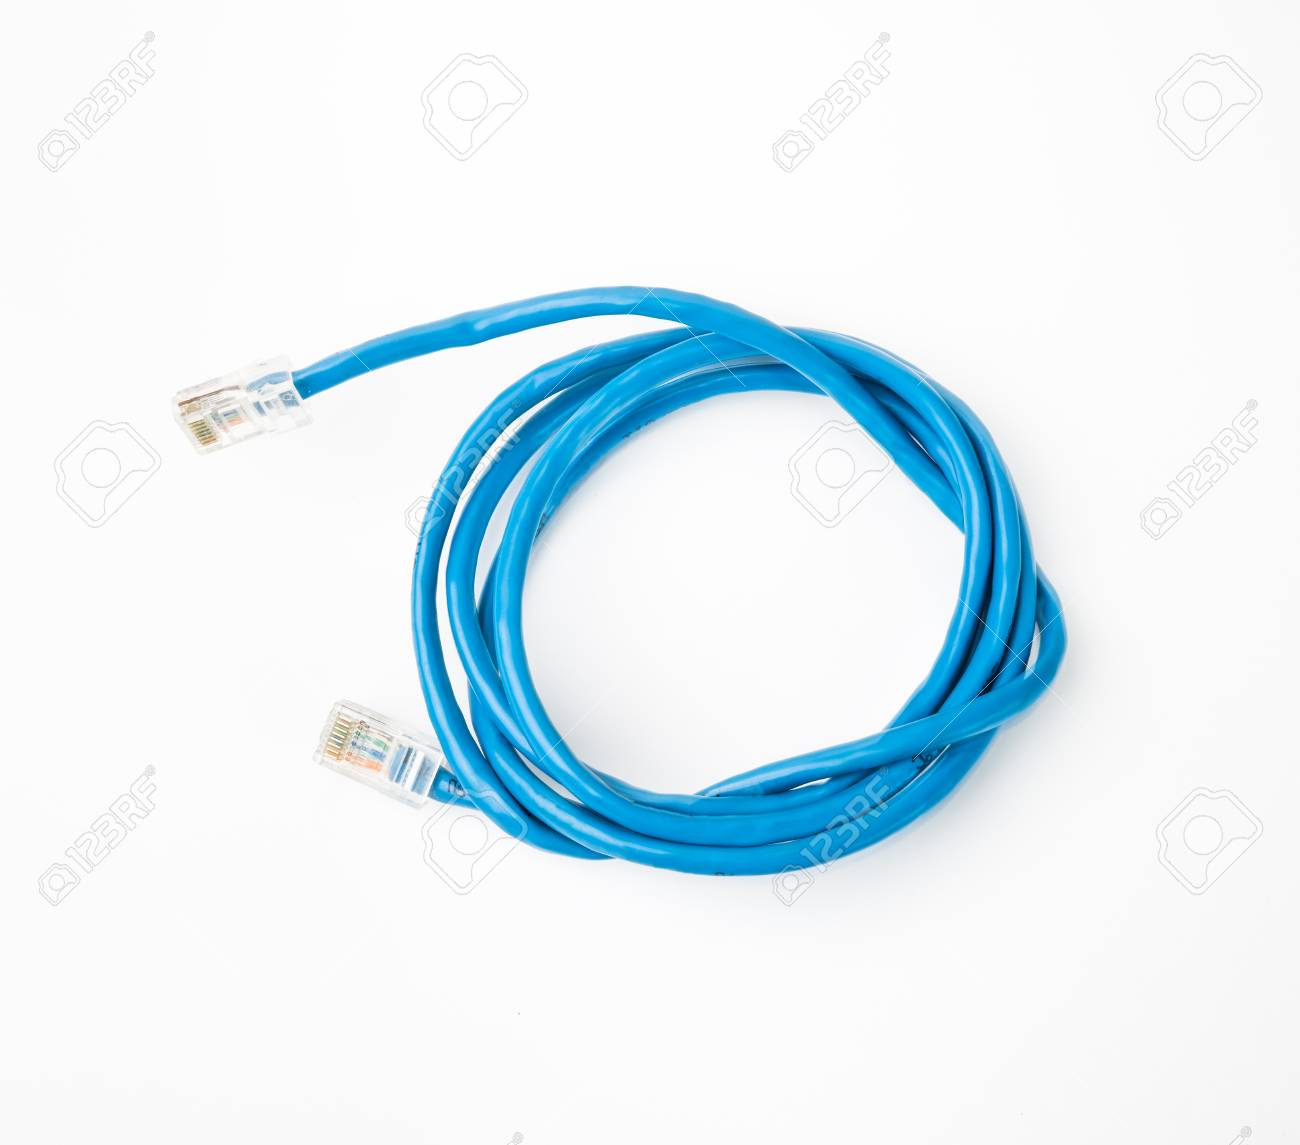 Patch Cord Blue Network Cable With Molded RJ45 Plug, Isolated ...